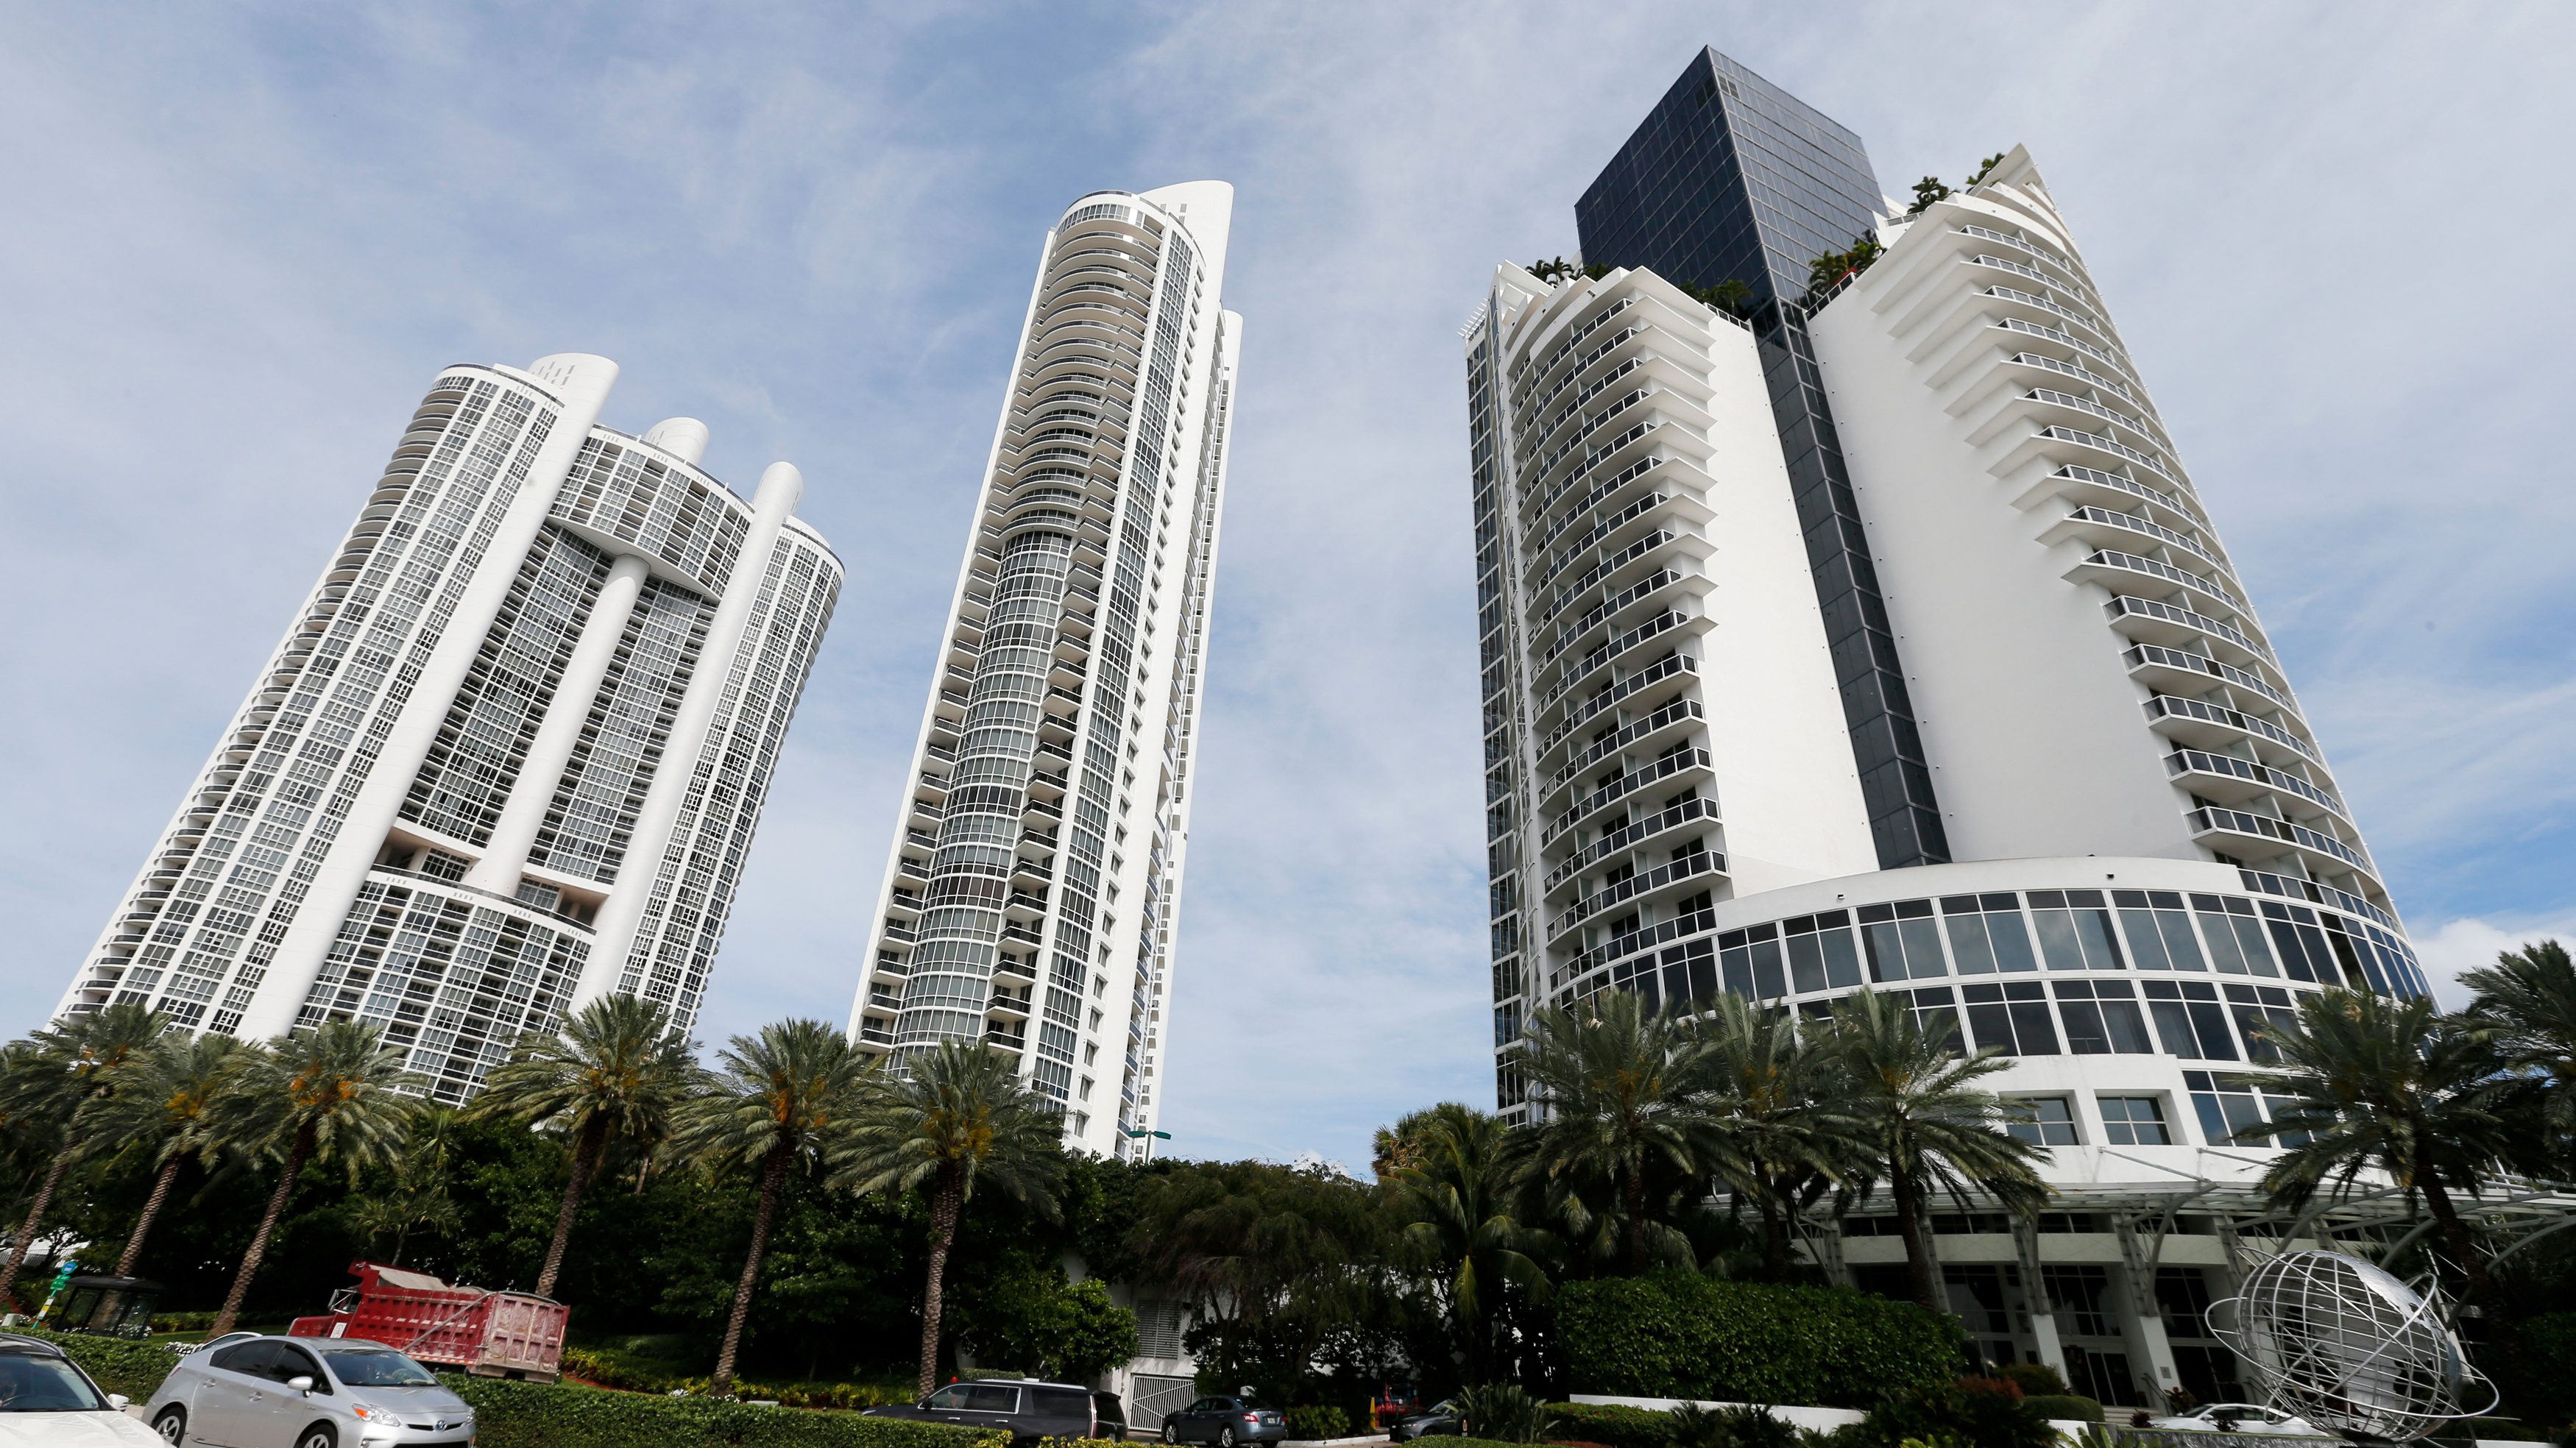 From left, the Trump Royale, The Trump Palace and the Trump International Beach Resort are shown in Sunny Isles Beach, Florida, U.S. March 13, 2017. Sunny Isles is a suburb of Miami.      To match Special Report USA-TRUMP/PROPERTY     REUTERS/Joe Skipper - RTX31IOC